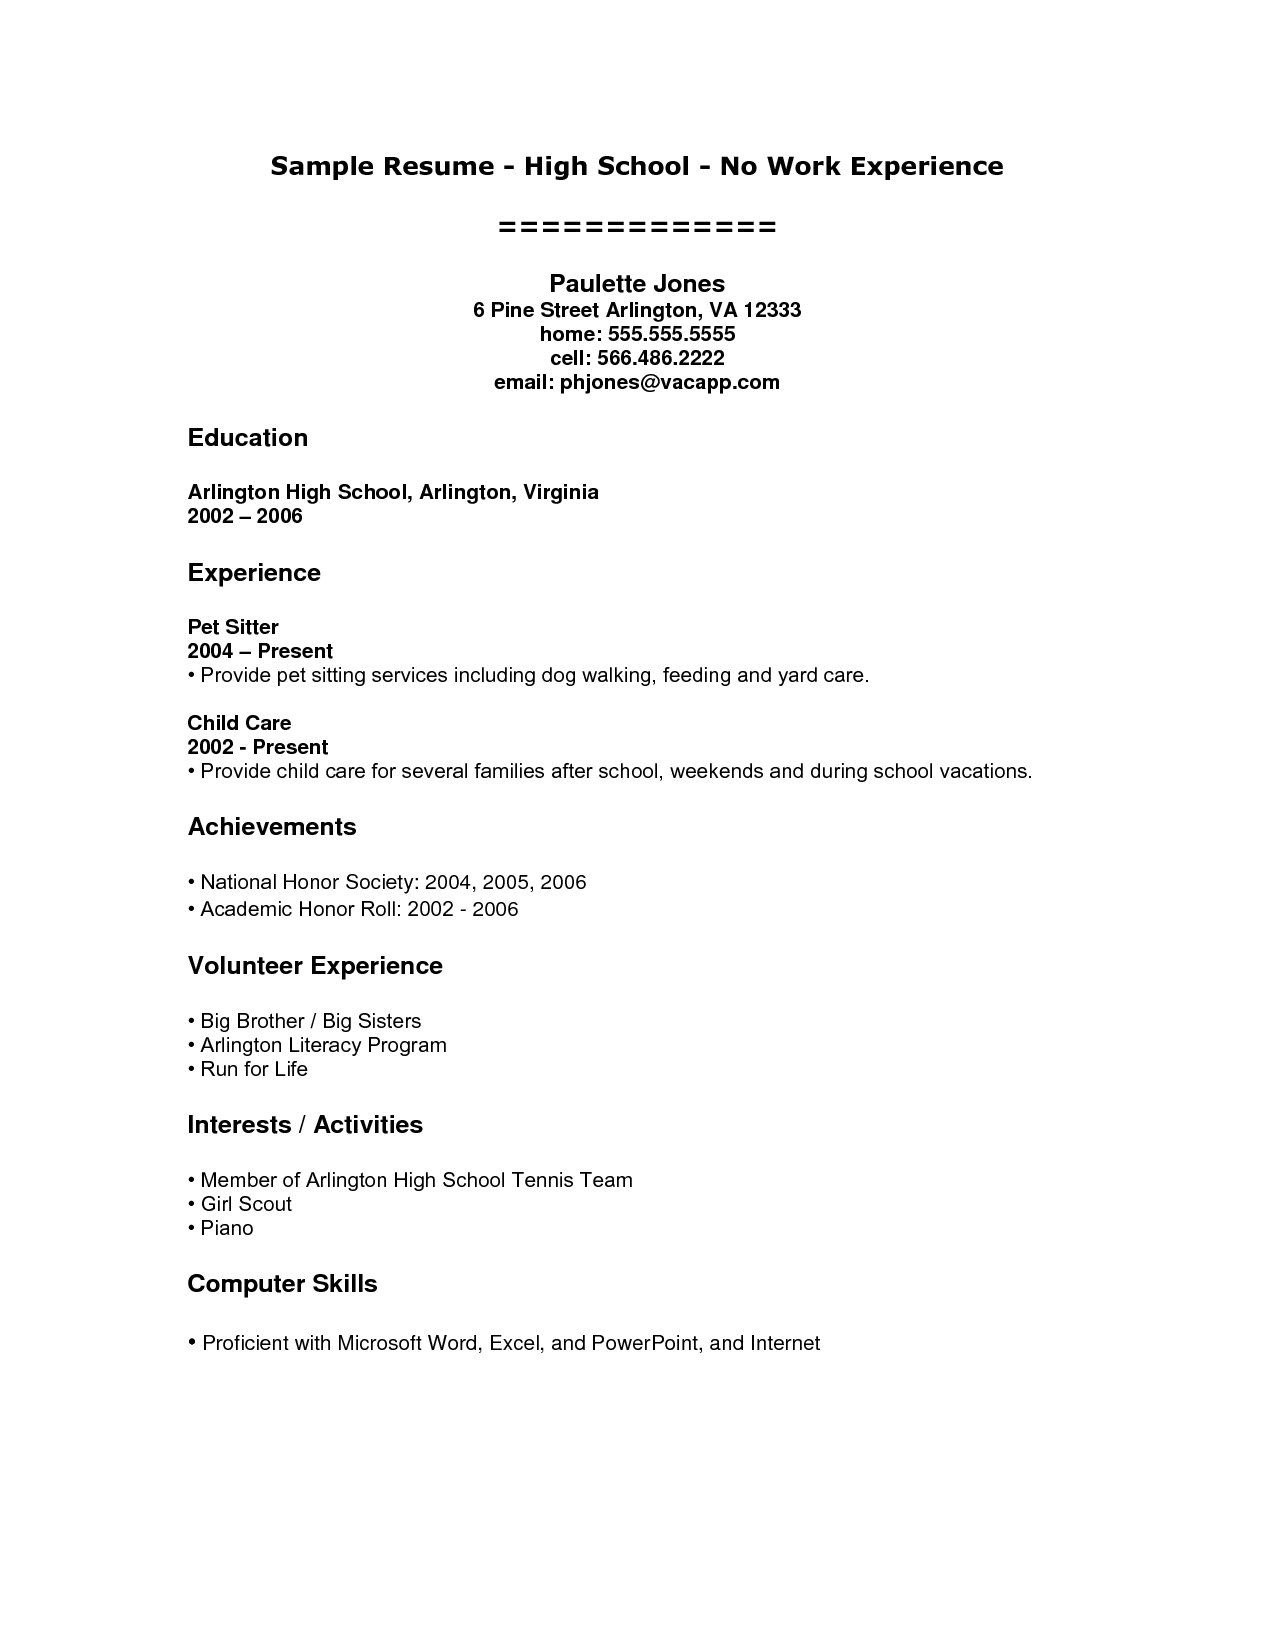 High School Student Resume Templates No Work Experience